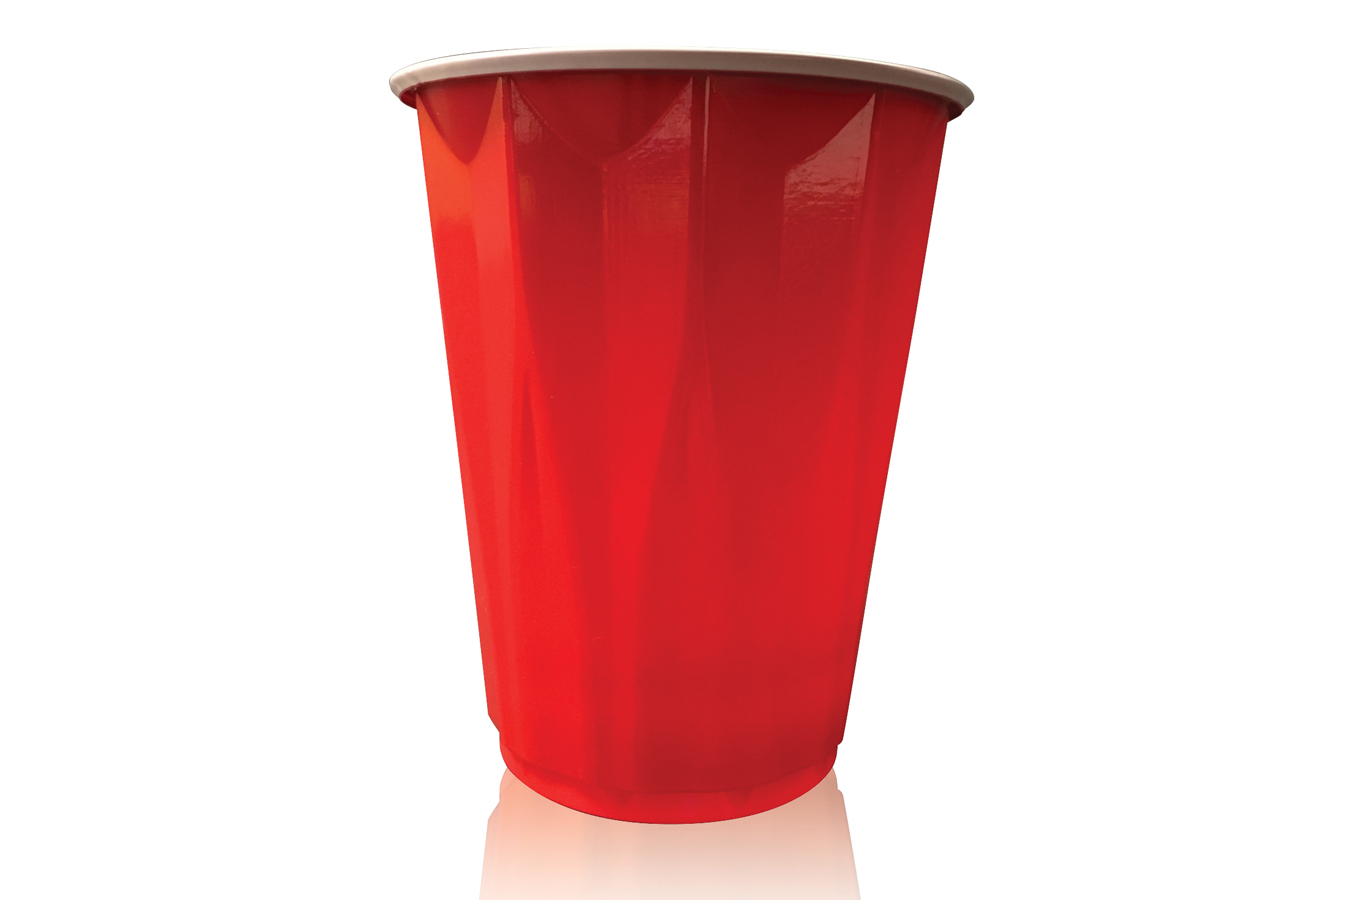 Apollo brand disposable red cold beverage drink cup